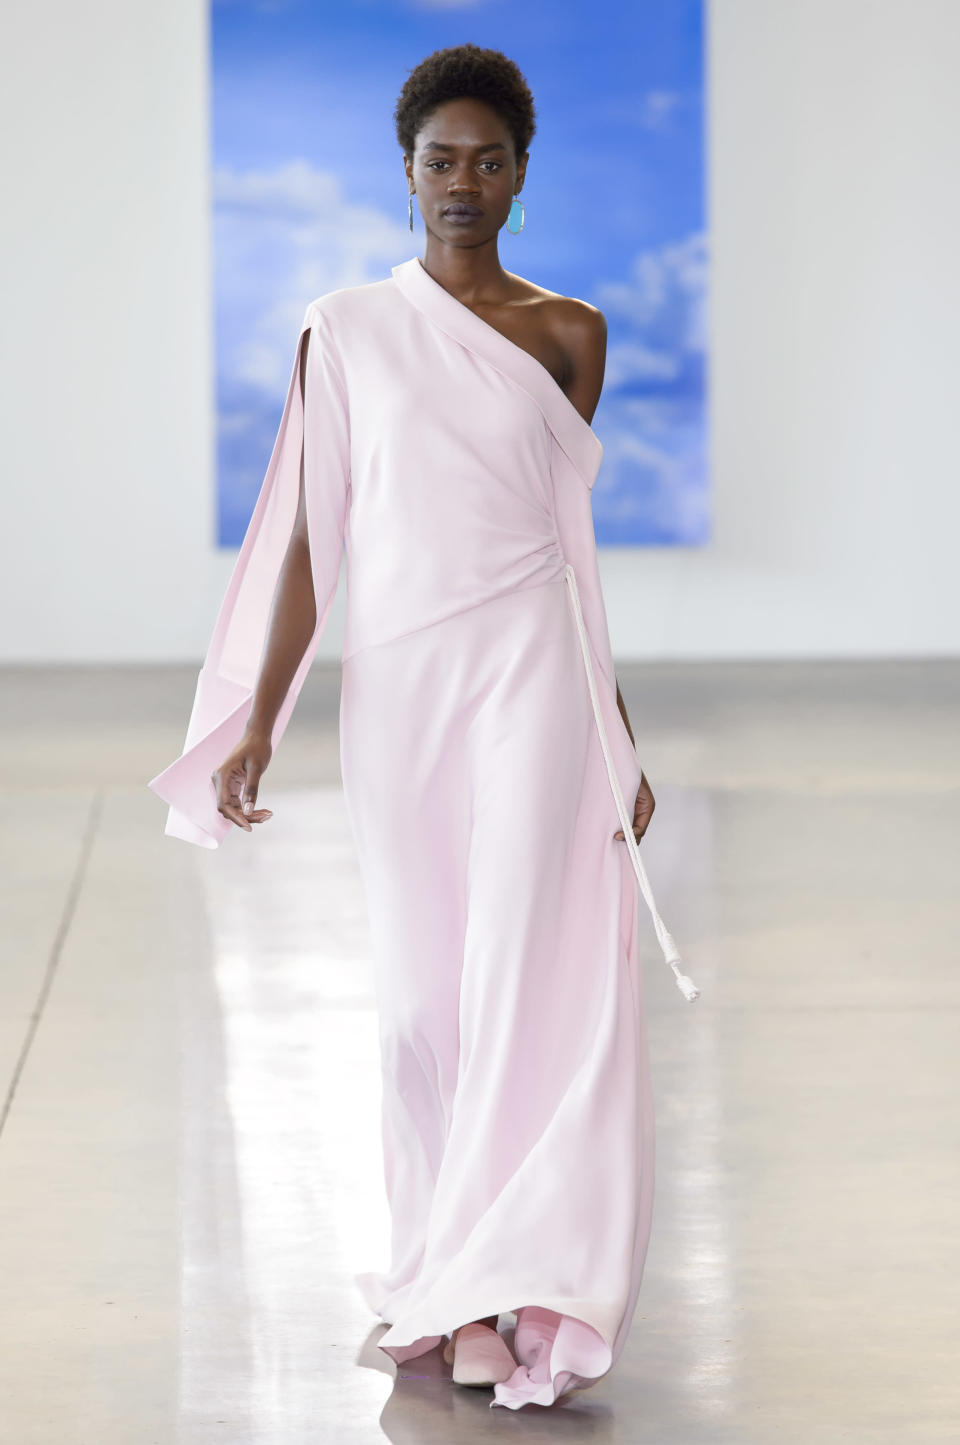 <p><i>Model wears an off-the-shoulder pastel pink dress from the SS18 Hellessy collection. (Photo: ImaxTree) </i></p>